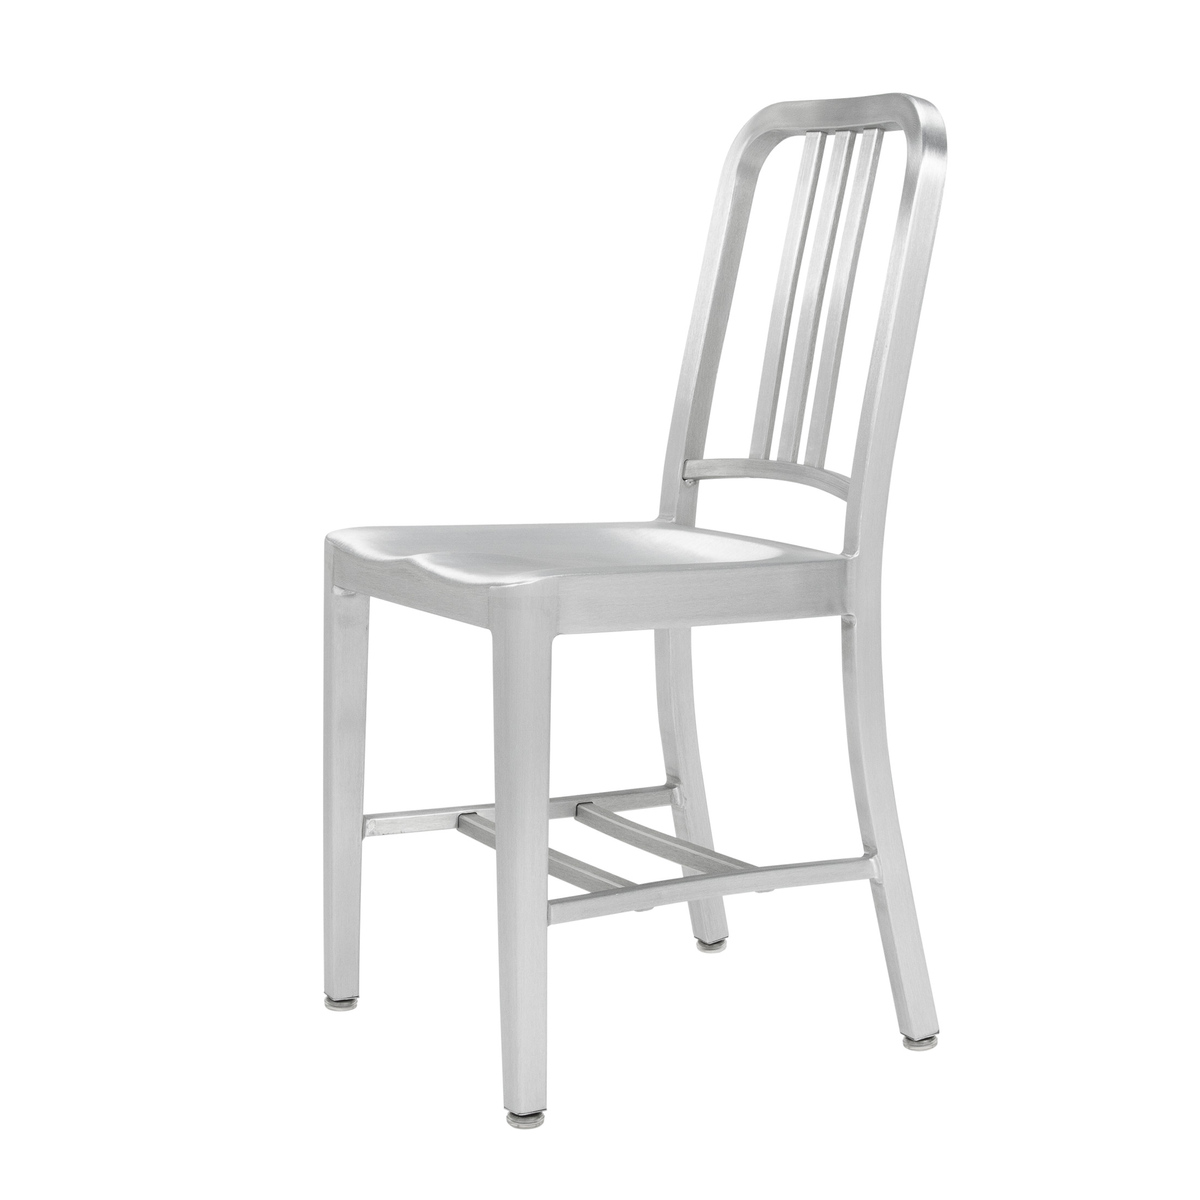 NAVY® CHAIR